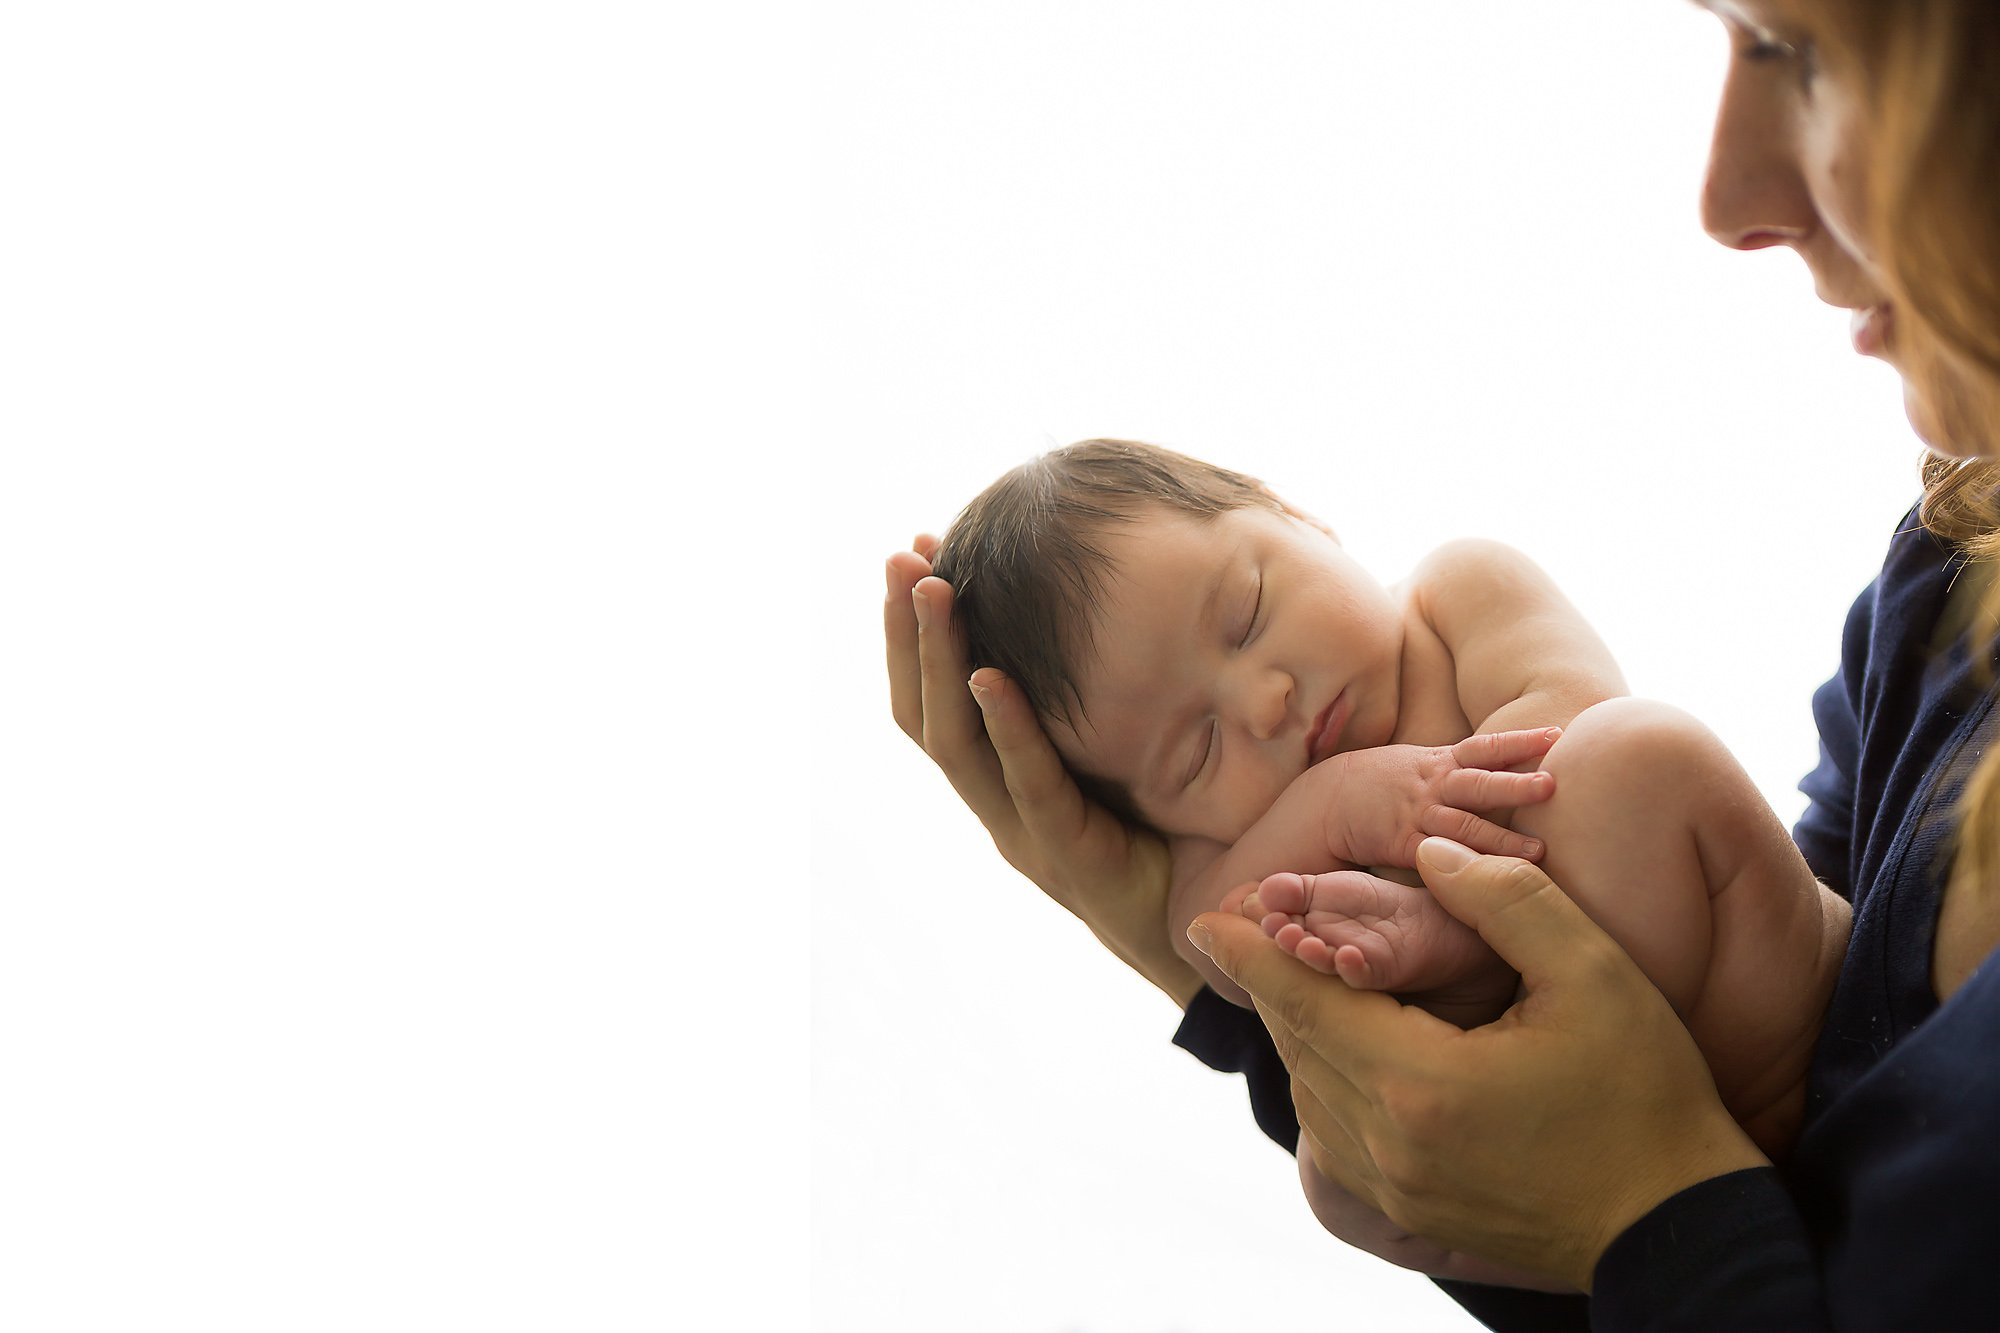 Newborn held in her mother's hands during an Oconomowoc Newborn Photography session